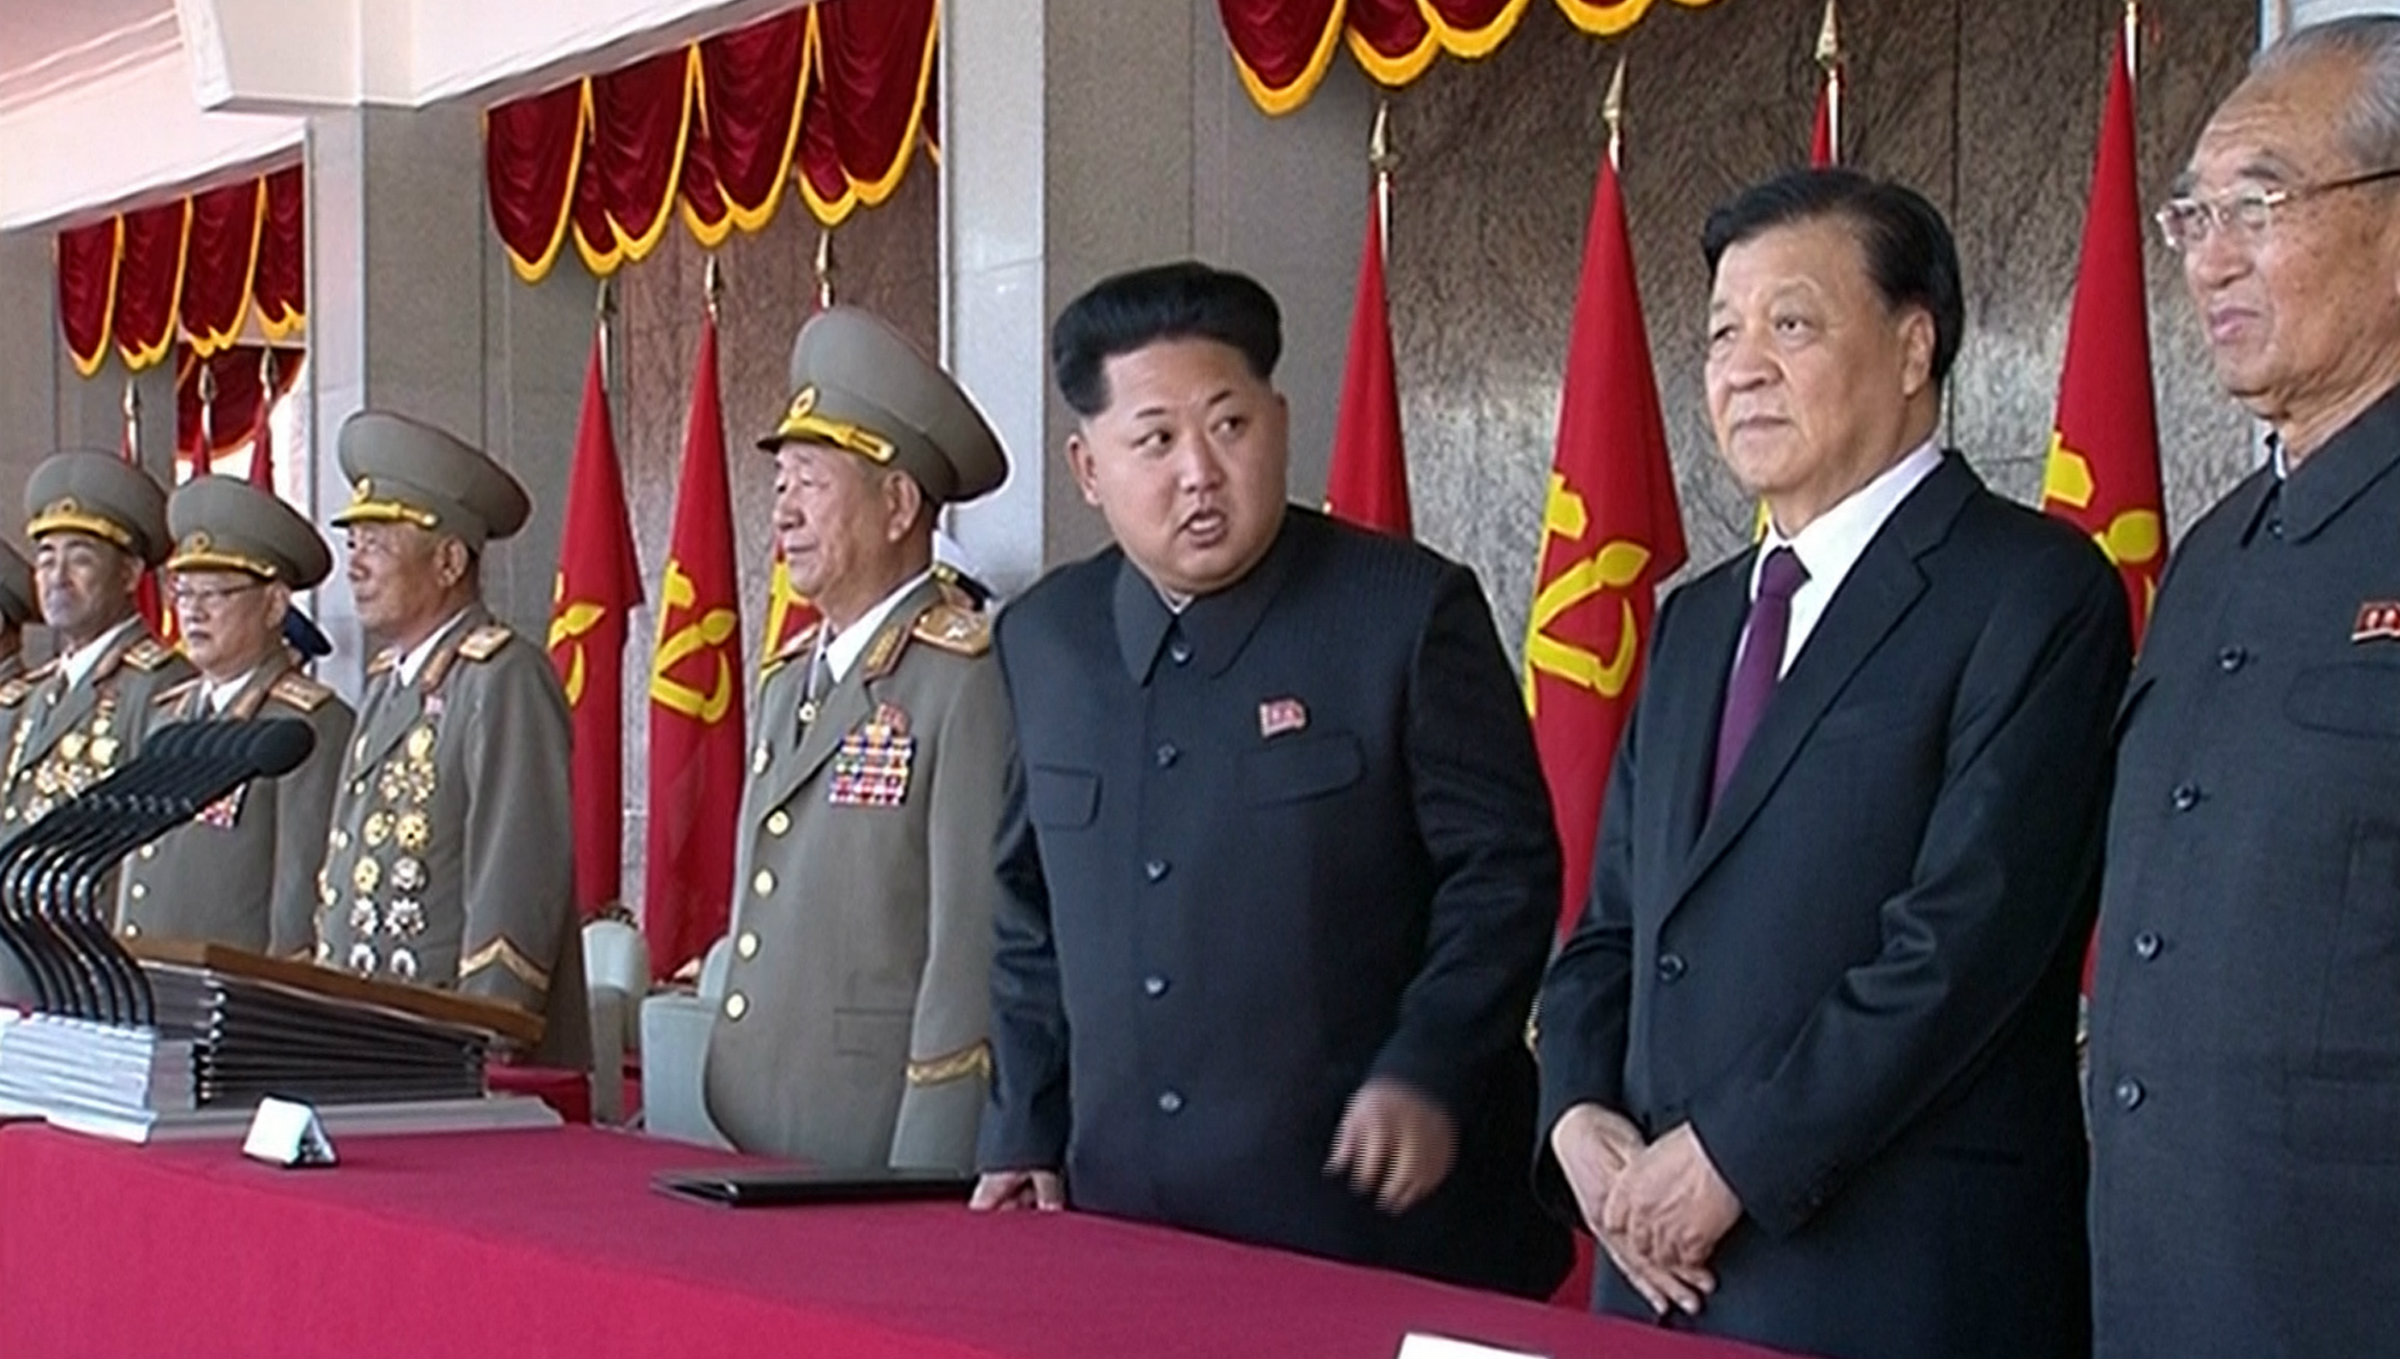 North Korea tested a nuclear bomb on China's doorstep, and